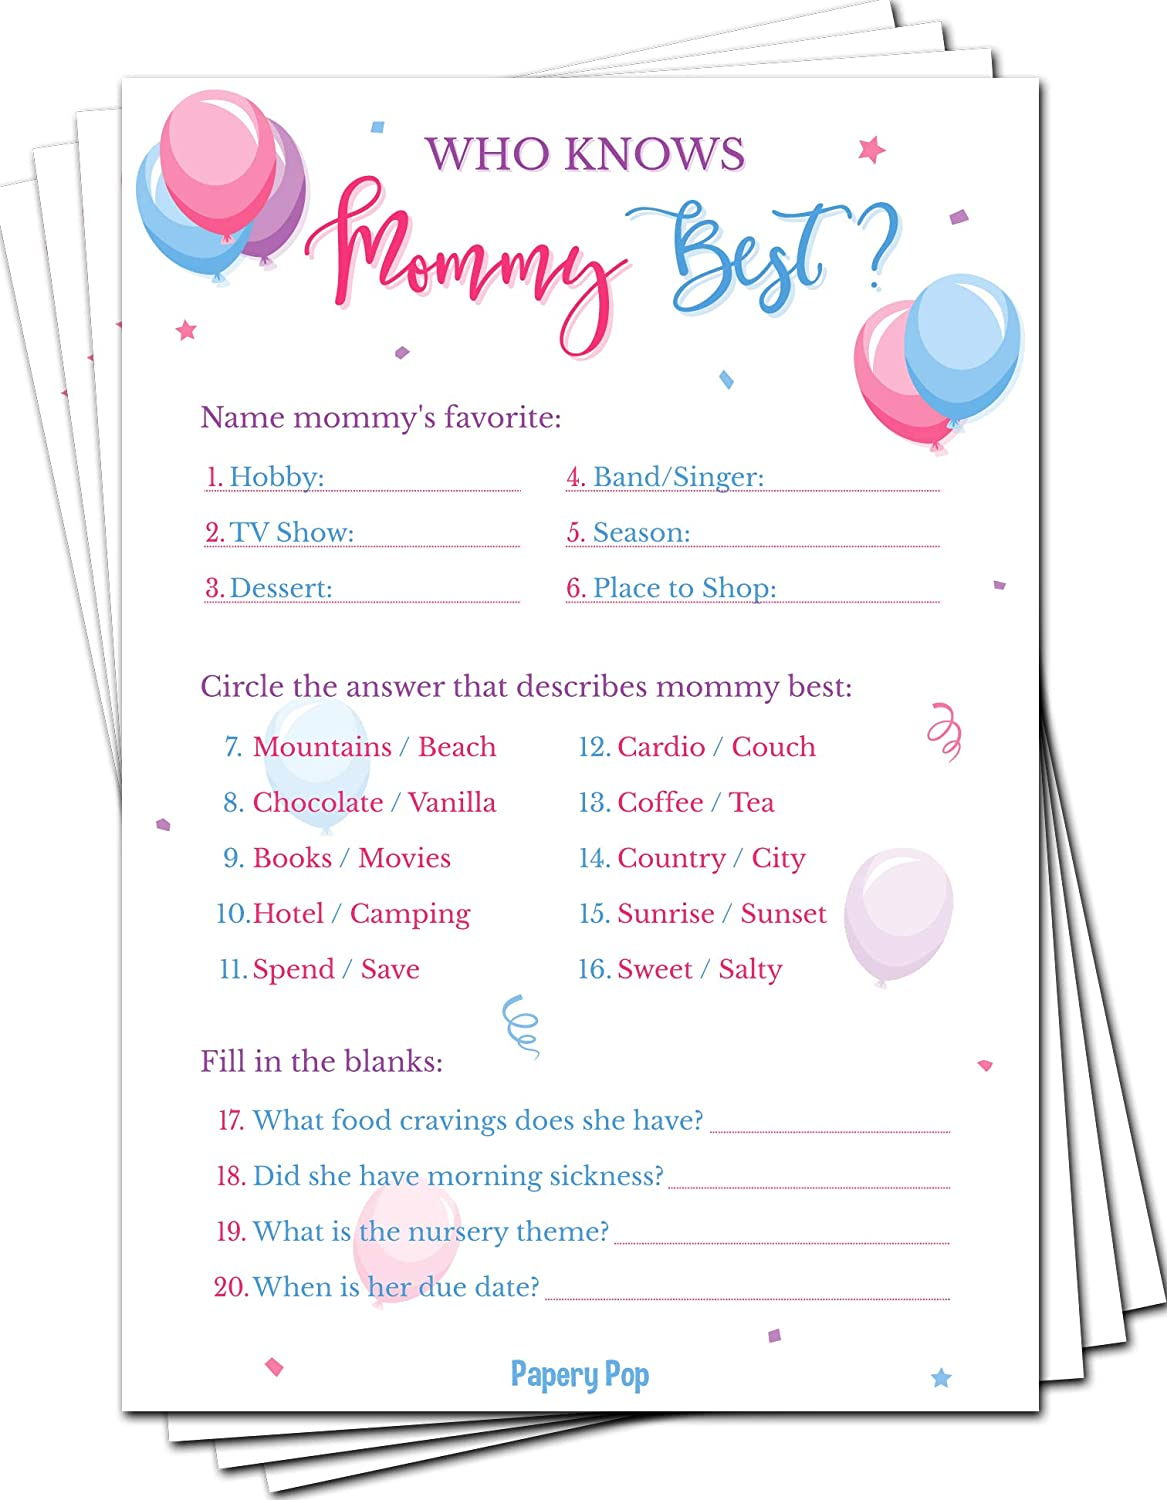 Gender Reveal Games - Who Knows Mommy Best Game Cards (Pack of 50) - Baby Shower Games for Boys or Girls - Party Activities Ideas Supplies - Balloons